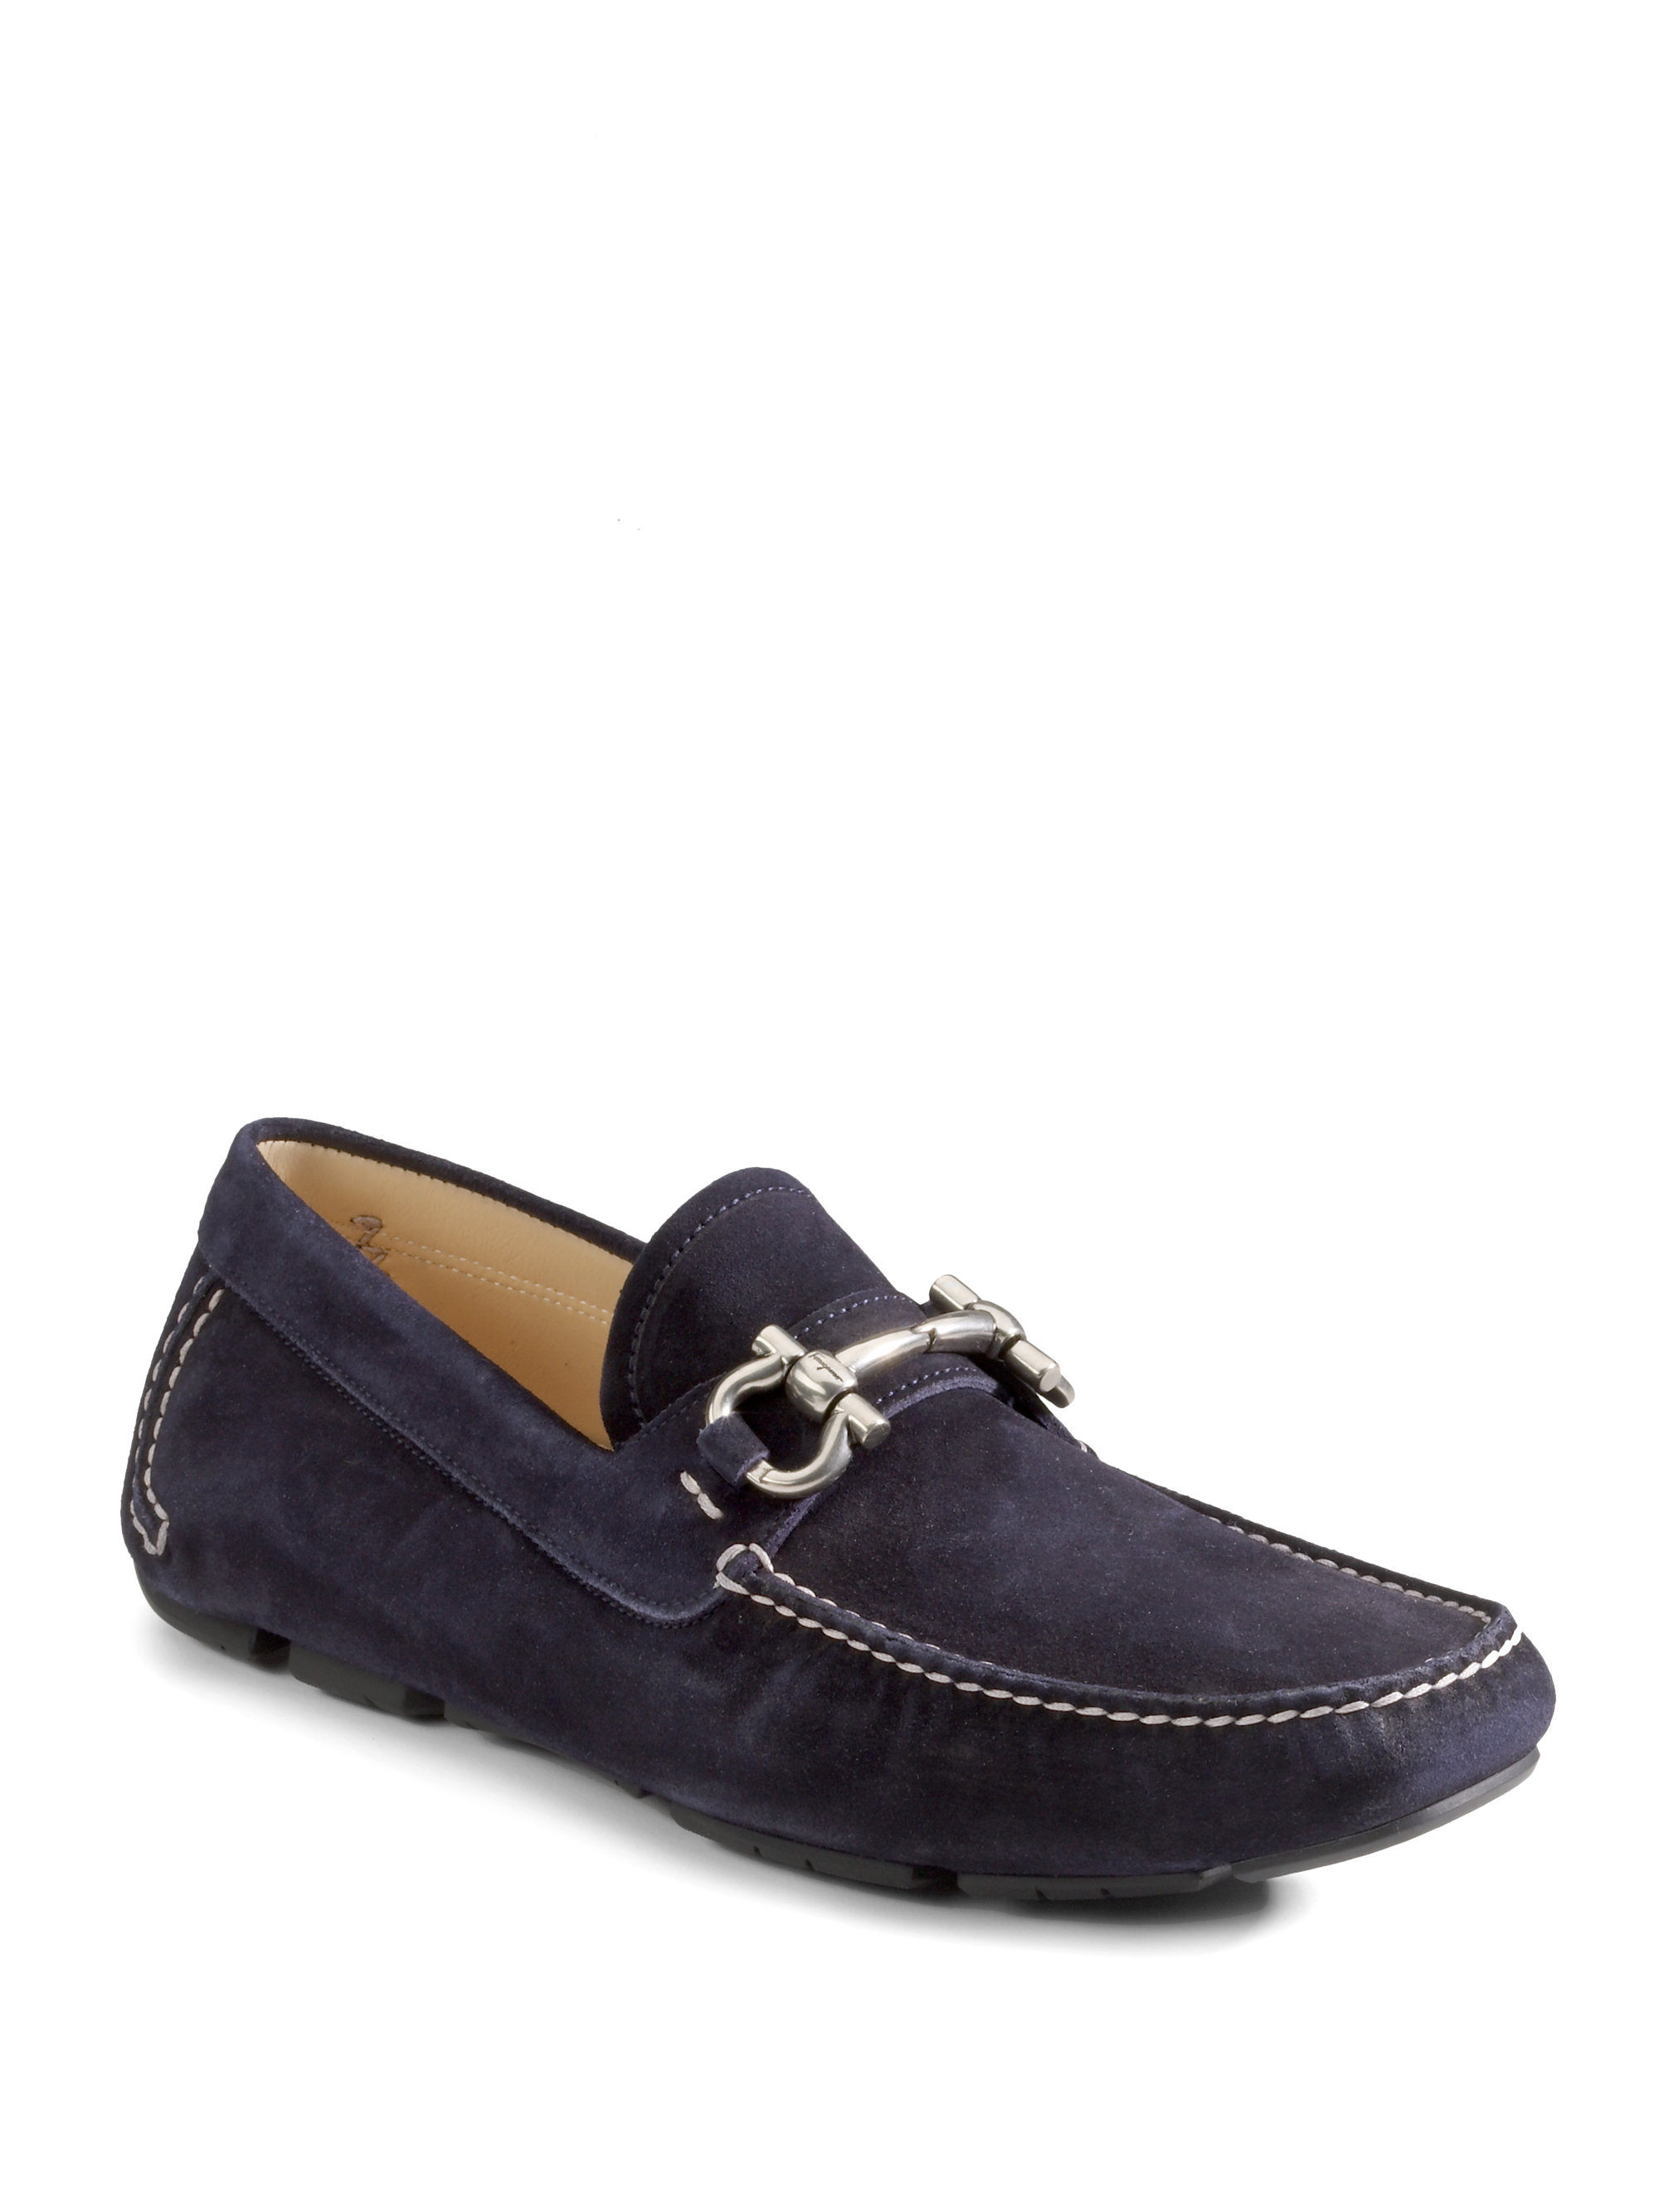 Saks Ferragamo Mens Shoes